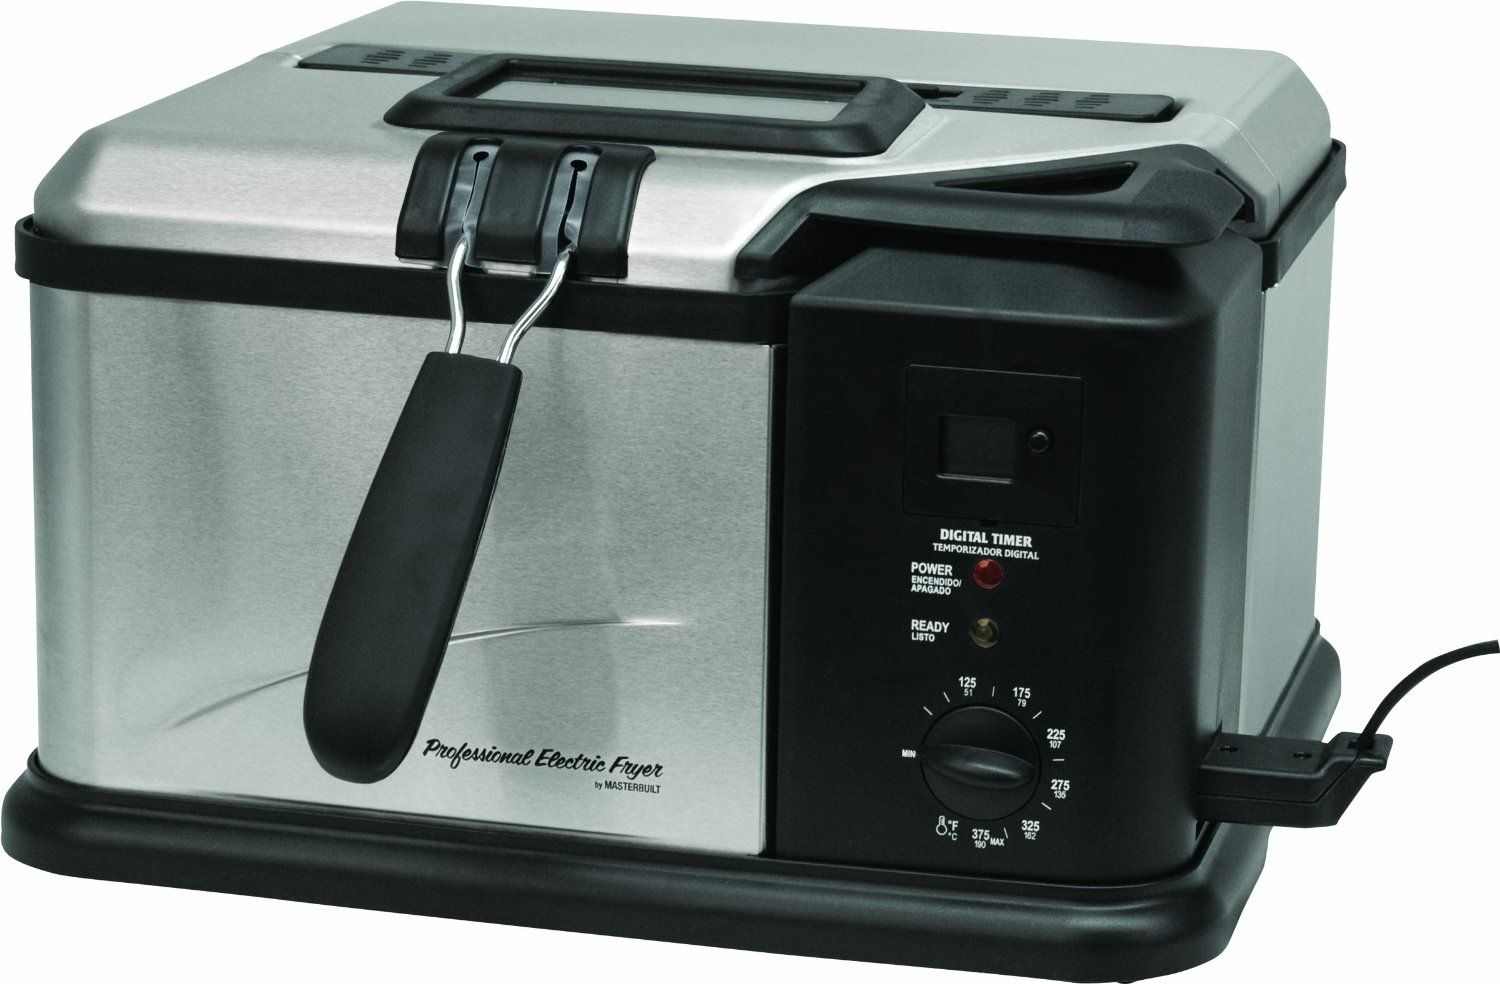 BEST FISH FRYER Fish fryer, Electric turkey fryer